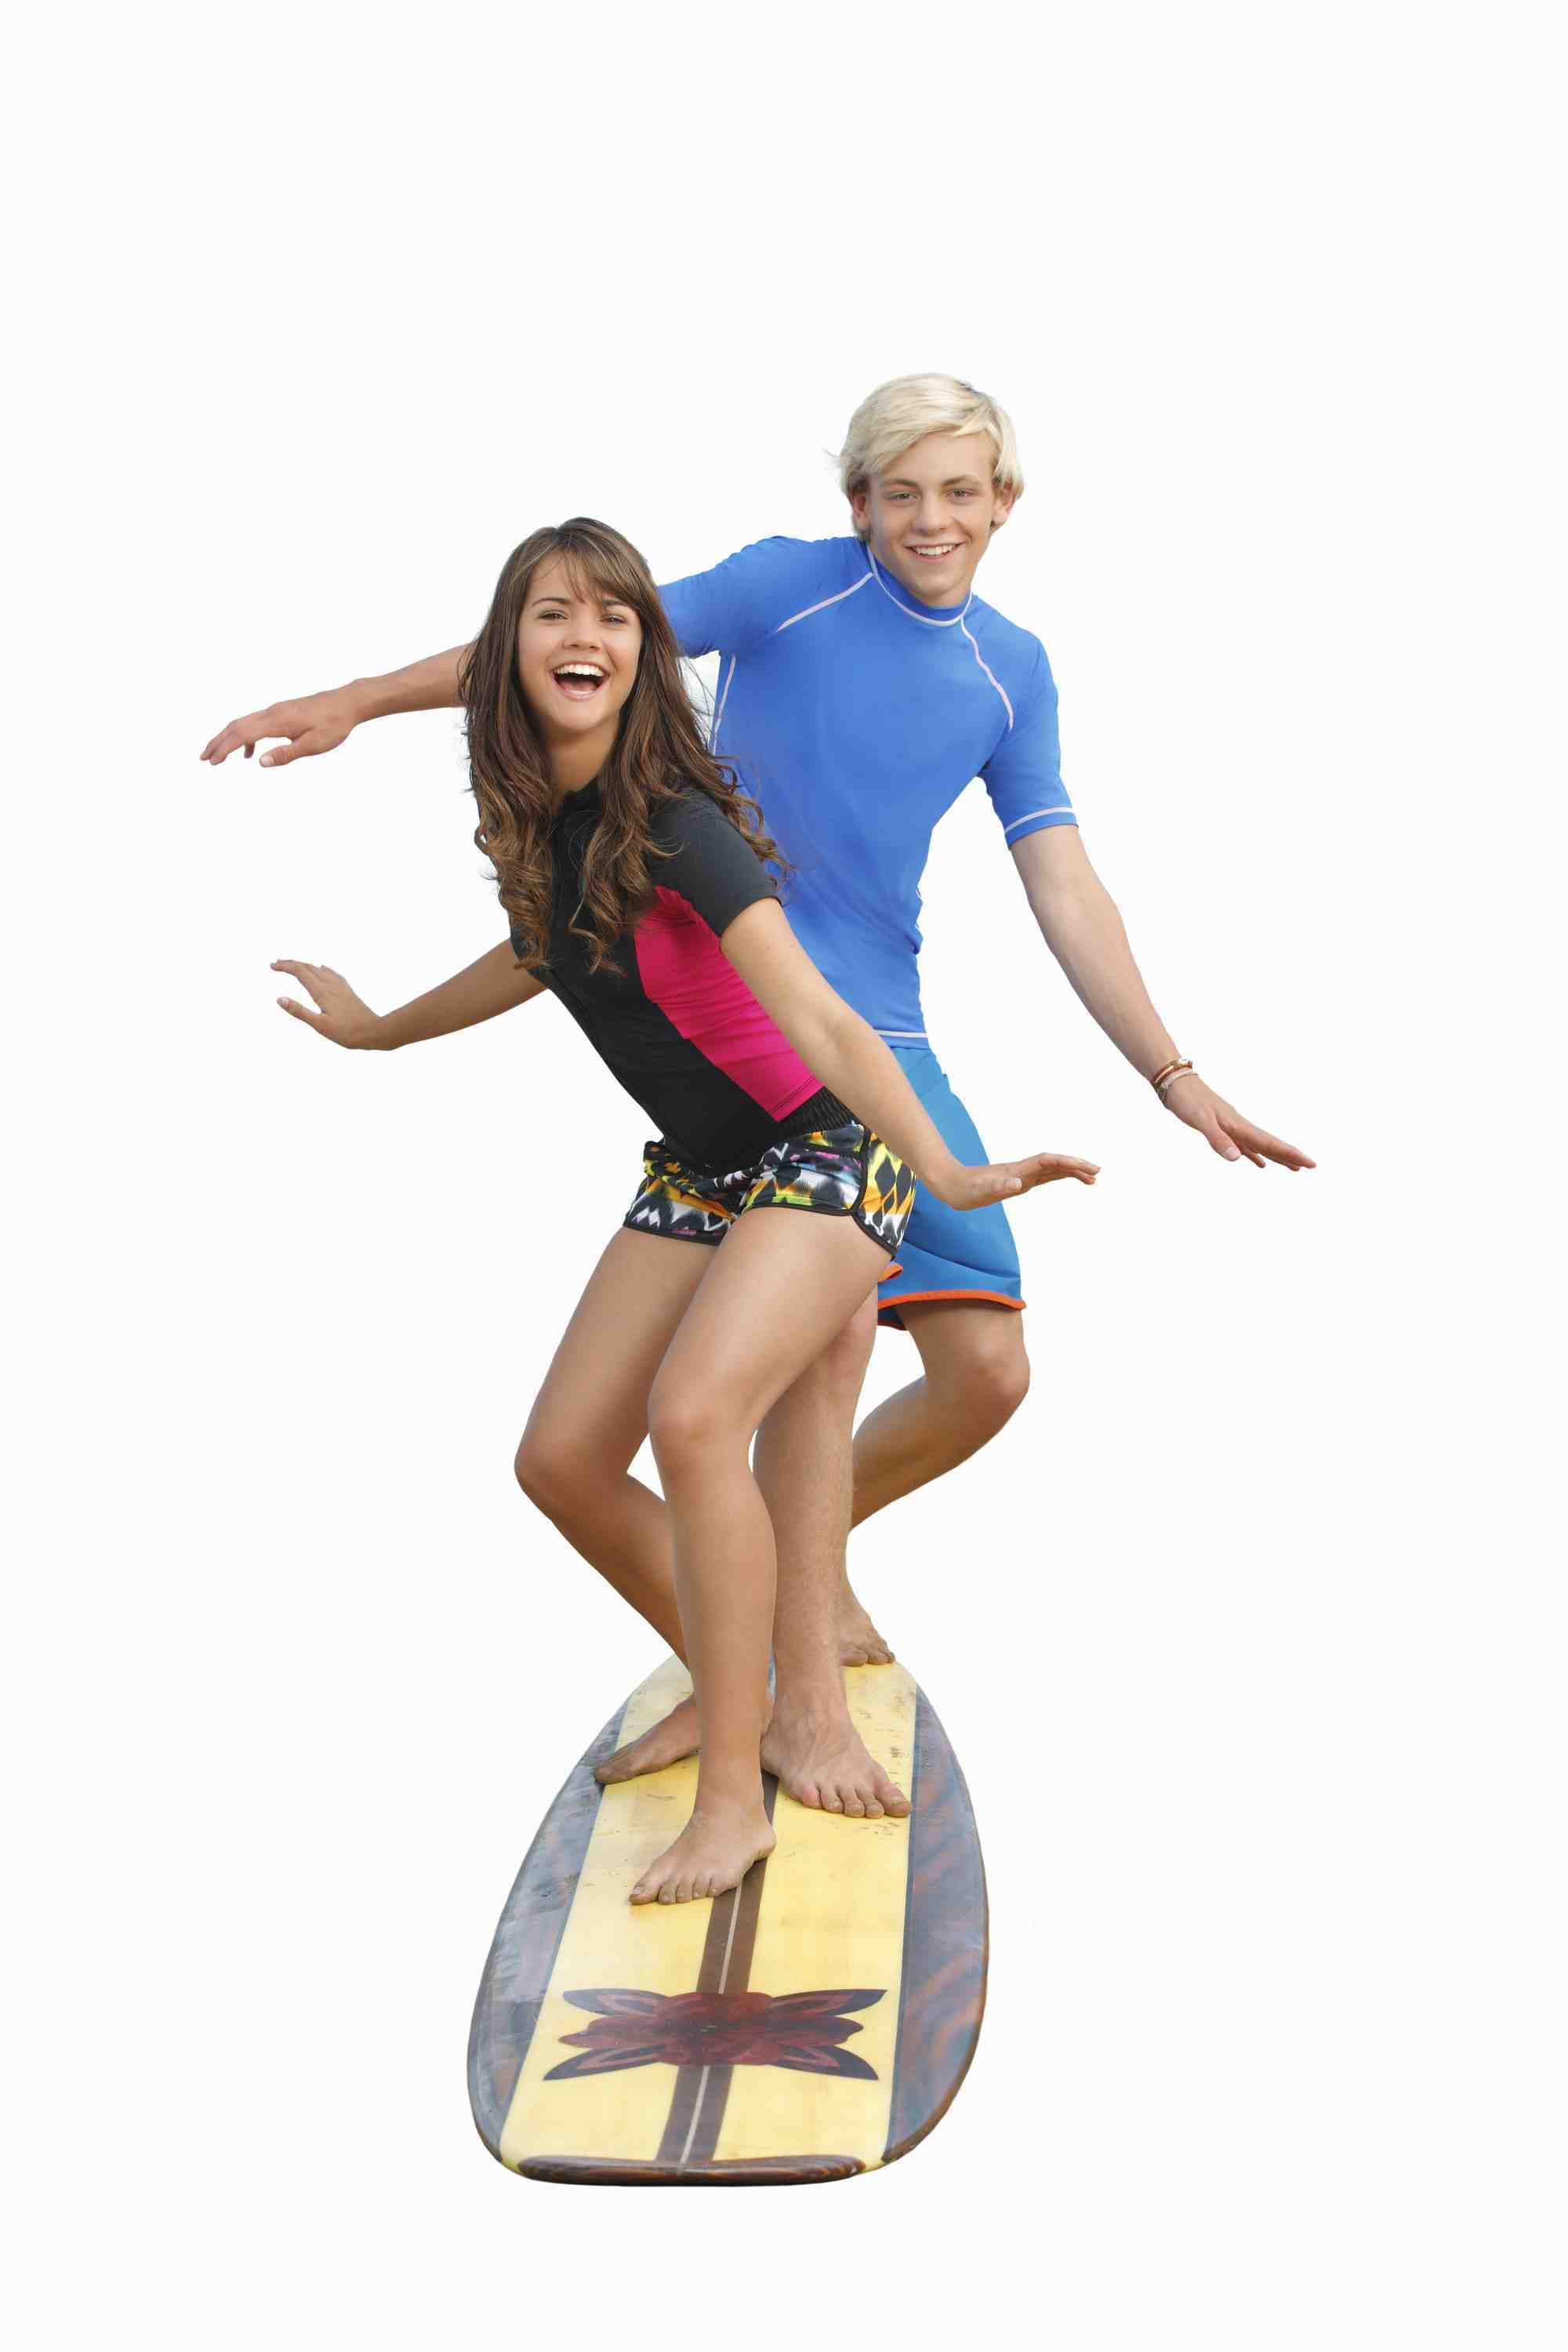 Laura marano and ross lynch tumblr ross lynch and laura marano